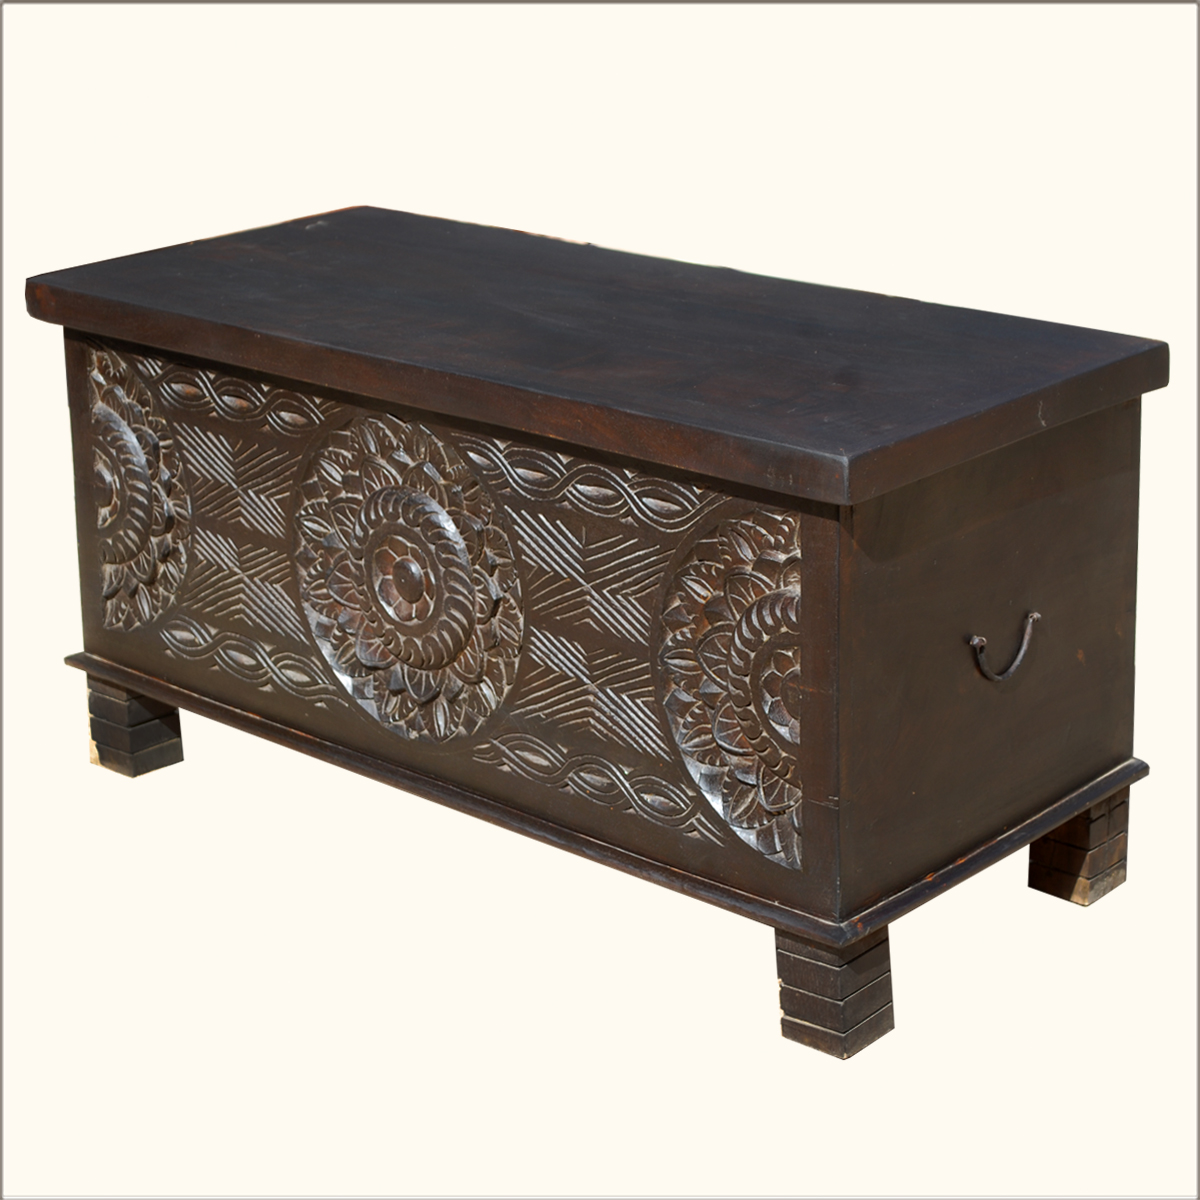 1A. Nottingham Hand Carved Hardwood Elevated Coffee Table Chest